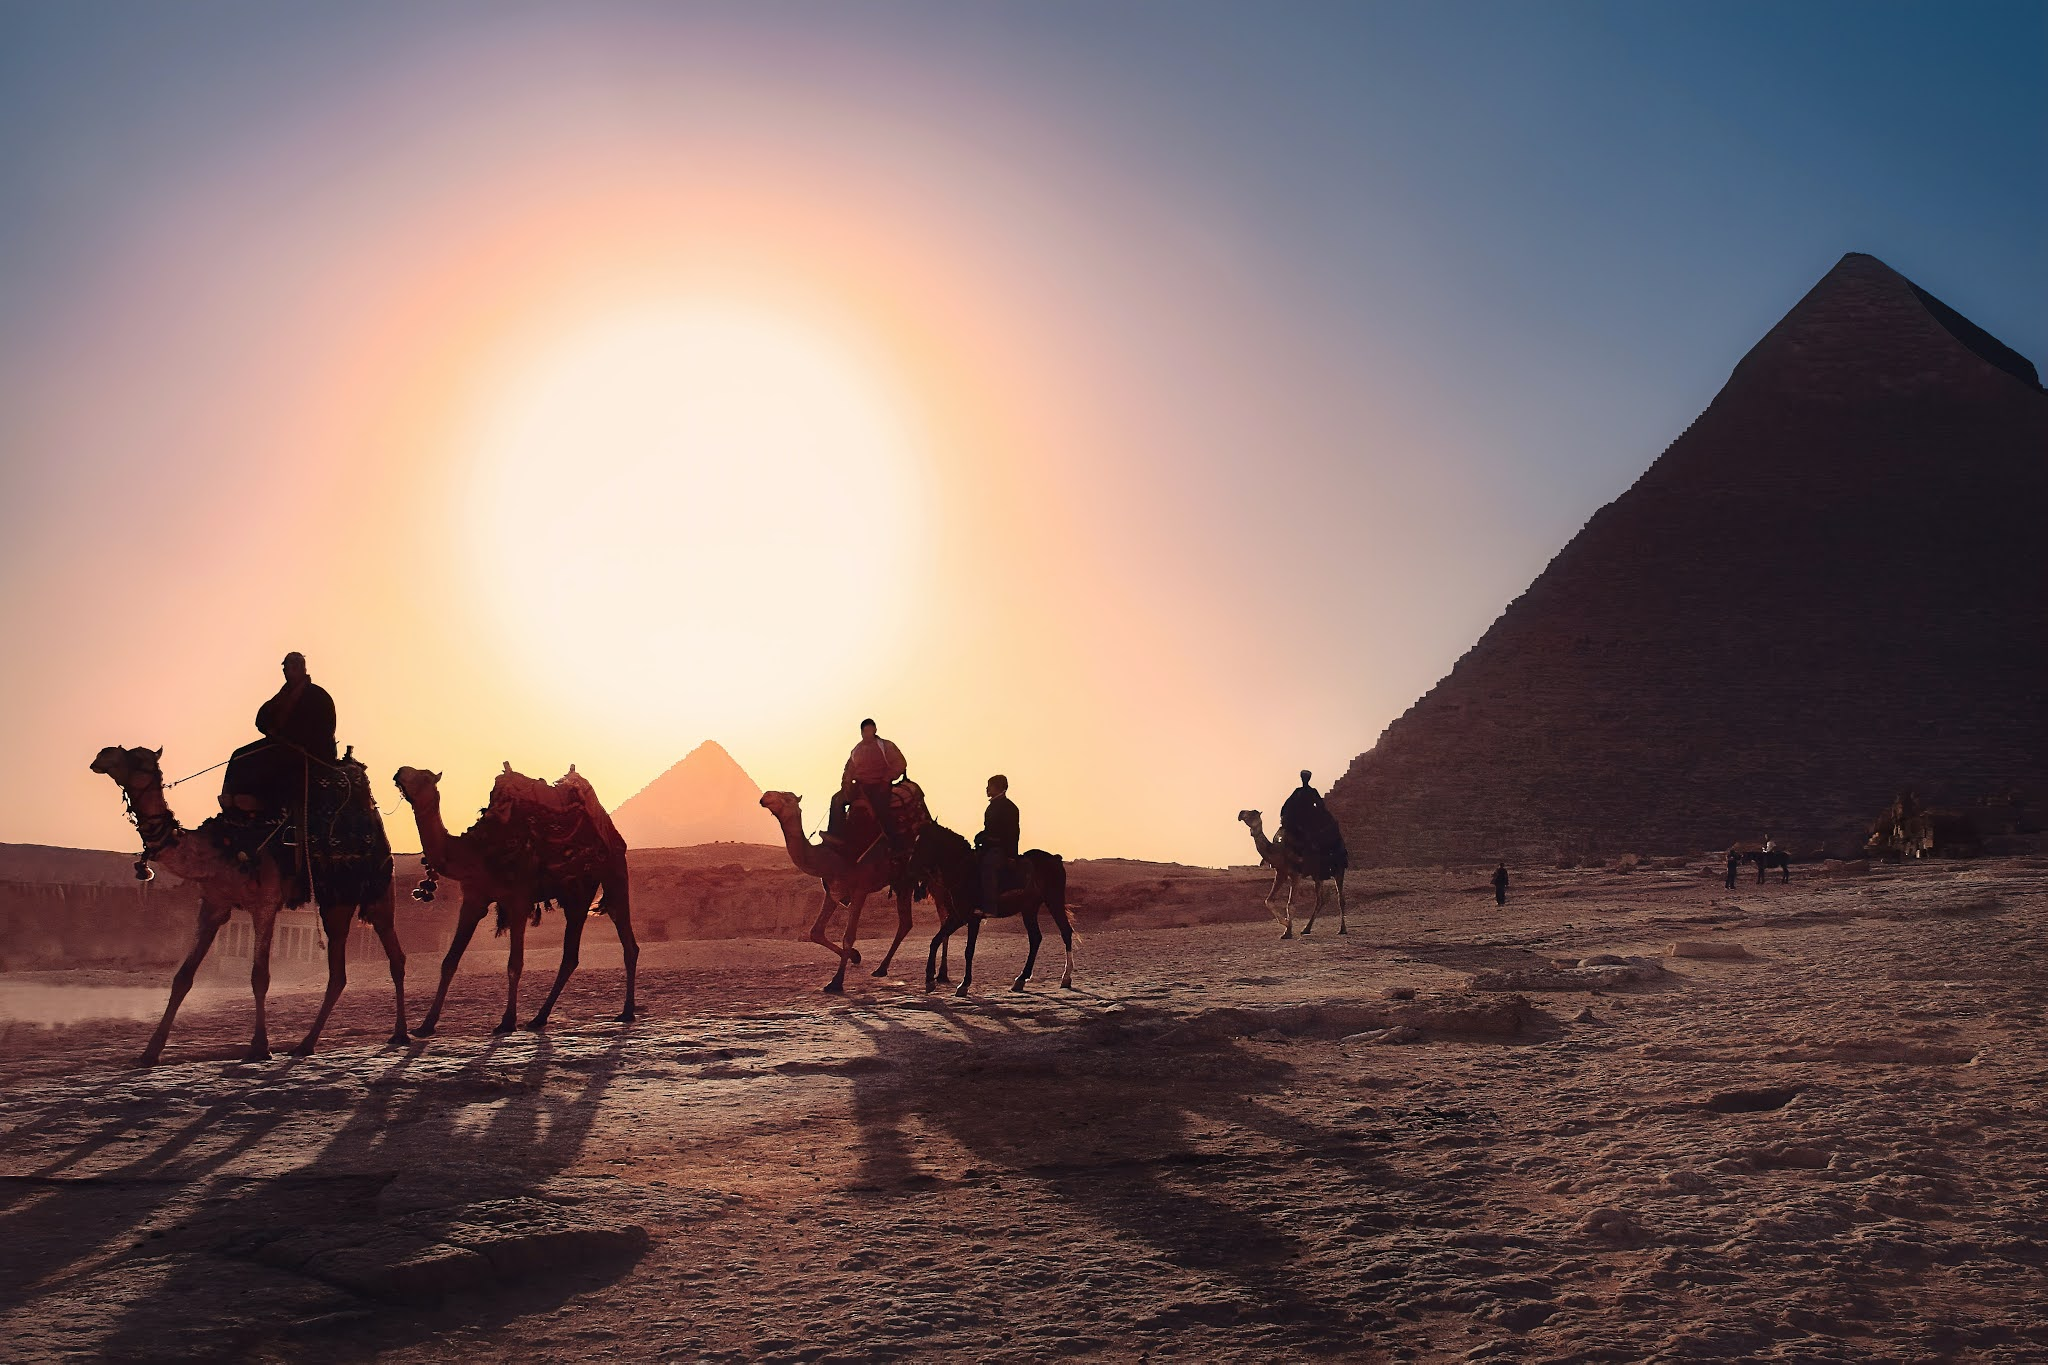 Egypt tourism to be present in full force at ATM to showcase resilience